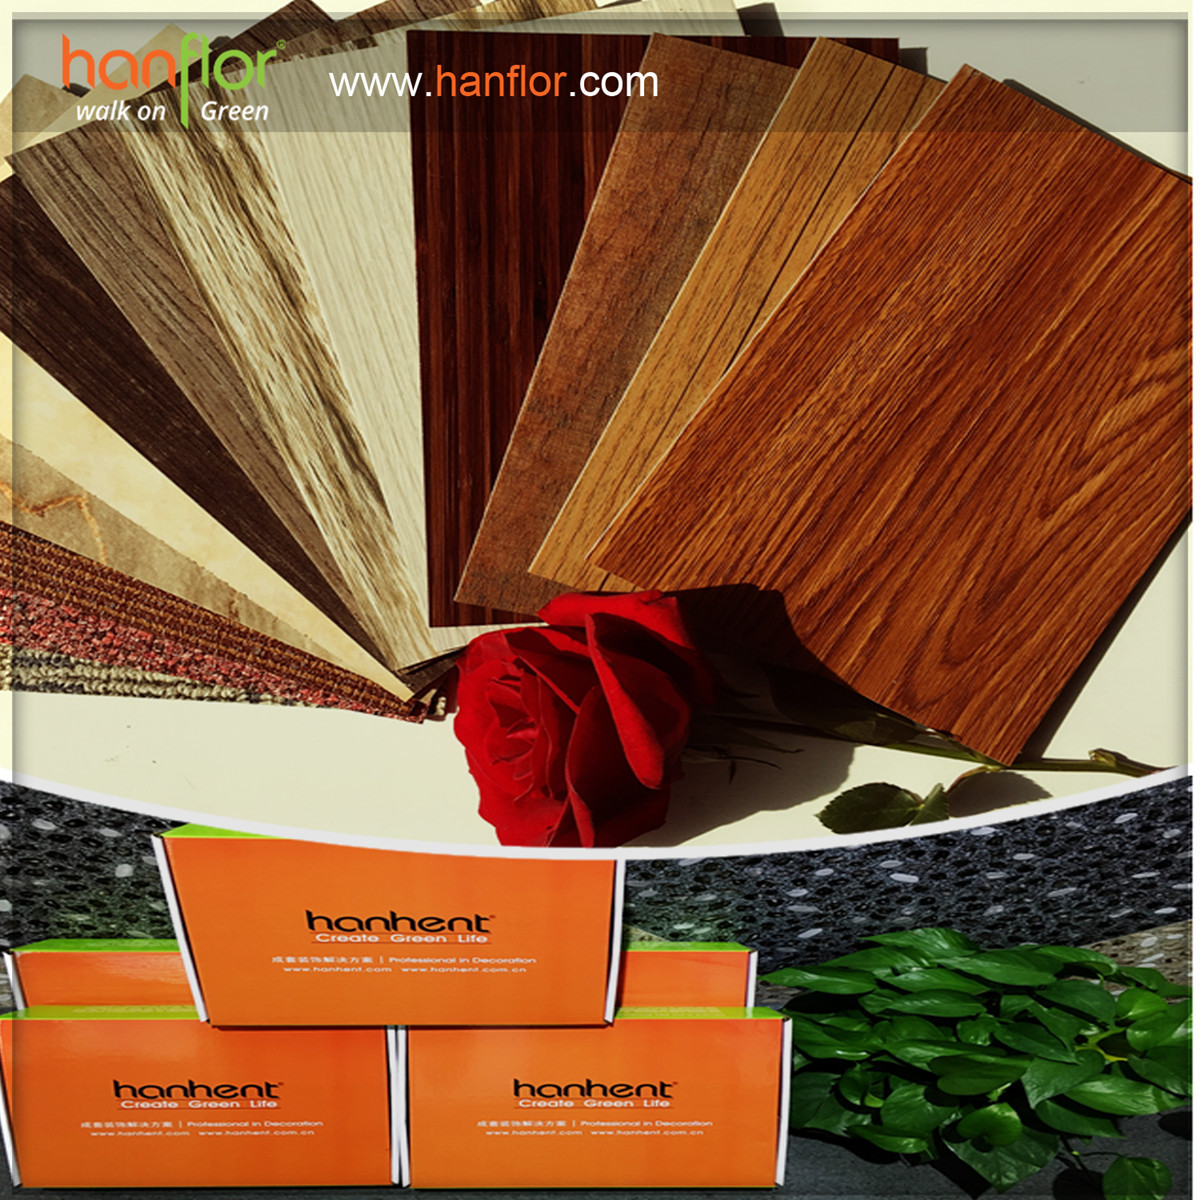 Free samples:Hanhent hanflor with free samples for you, free samples of pvc flooring we will arrange for you as your requirements. plastic floor,pvc floor, Vinyl floor, plastic flooring, pvc flooring, Vinyl flooring, pvc plank, vinyl plank, pvc tile, vinyl tile, click vinyl flooring, interlocking vinyl flooring, unilin click flooring, unilin click vinyl flooring, click pvc flooring, interlocking pvc flooring, unilin click vinyl flooring, unilin click pvc flooring